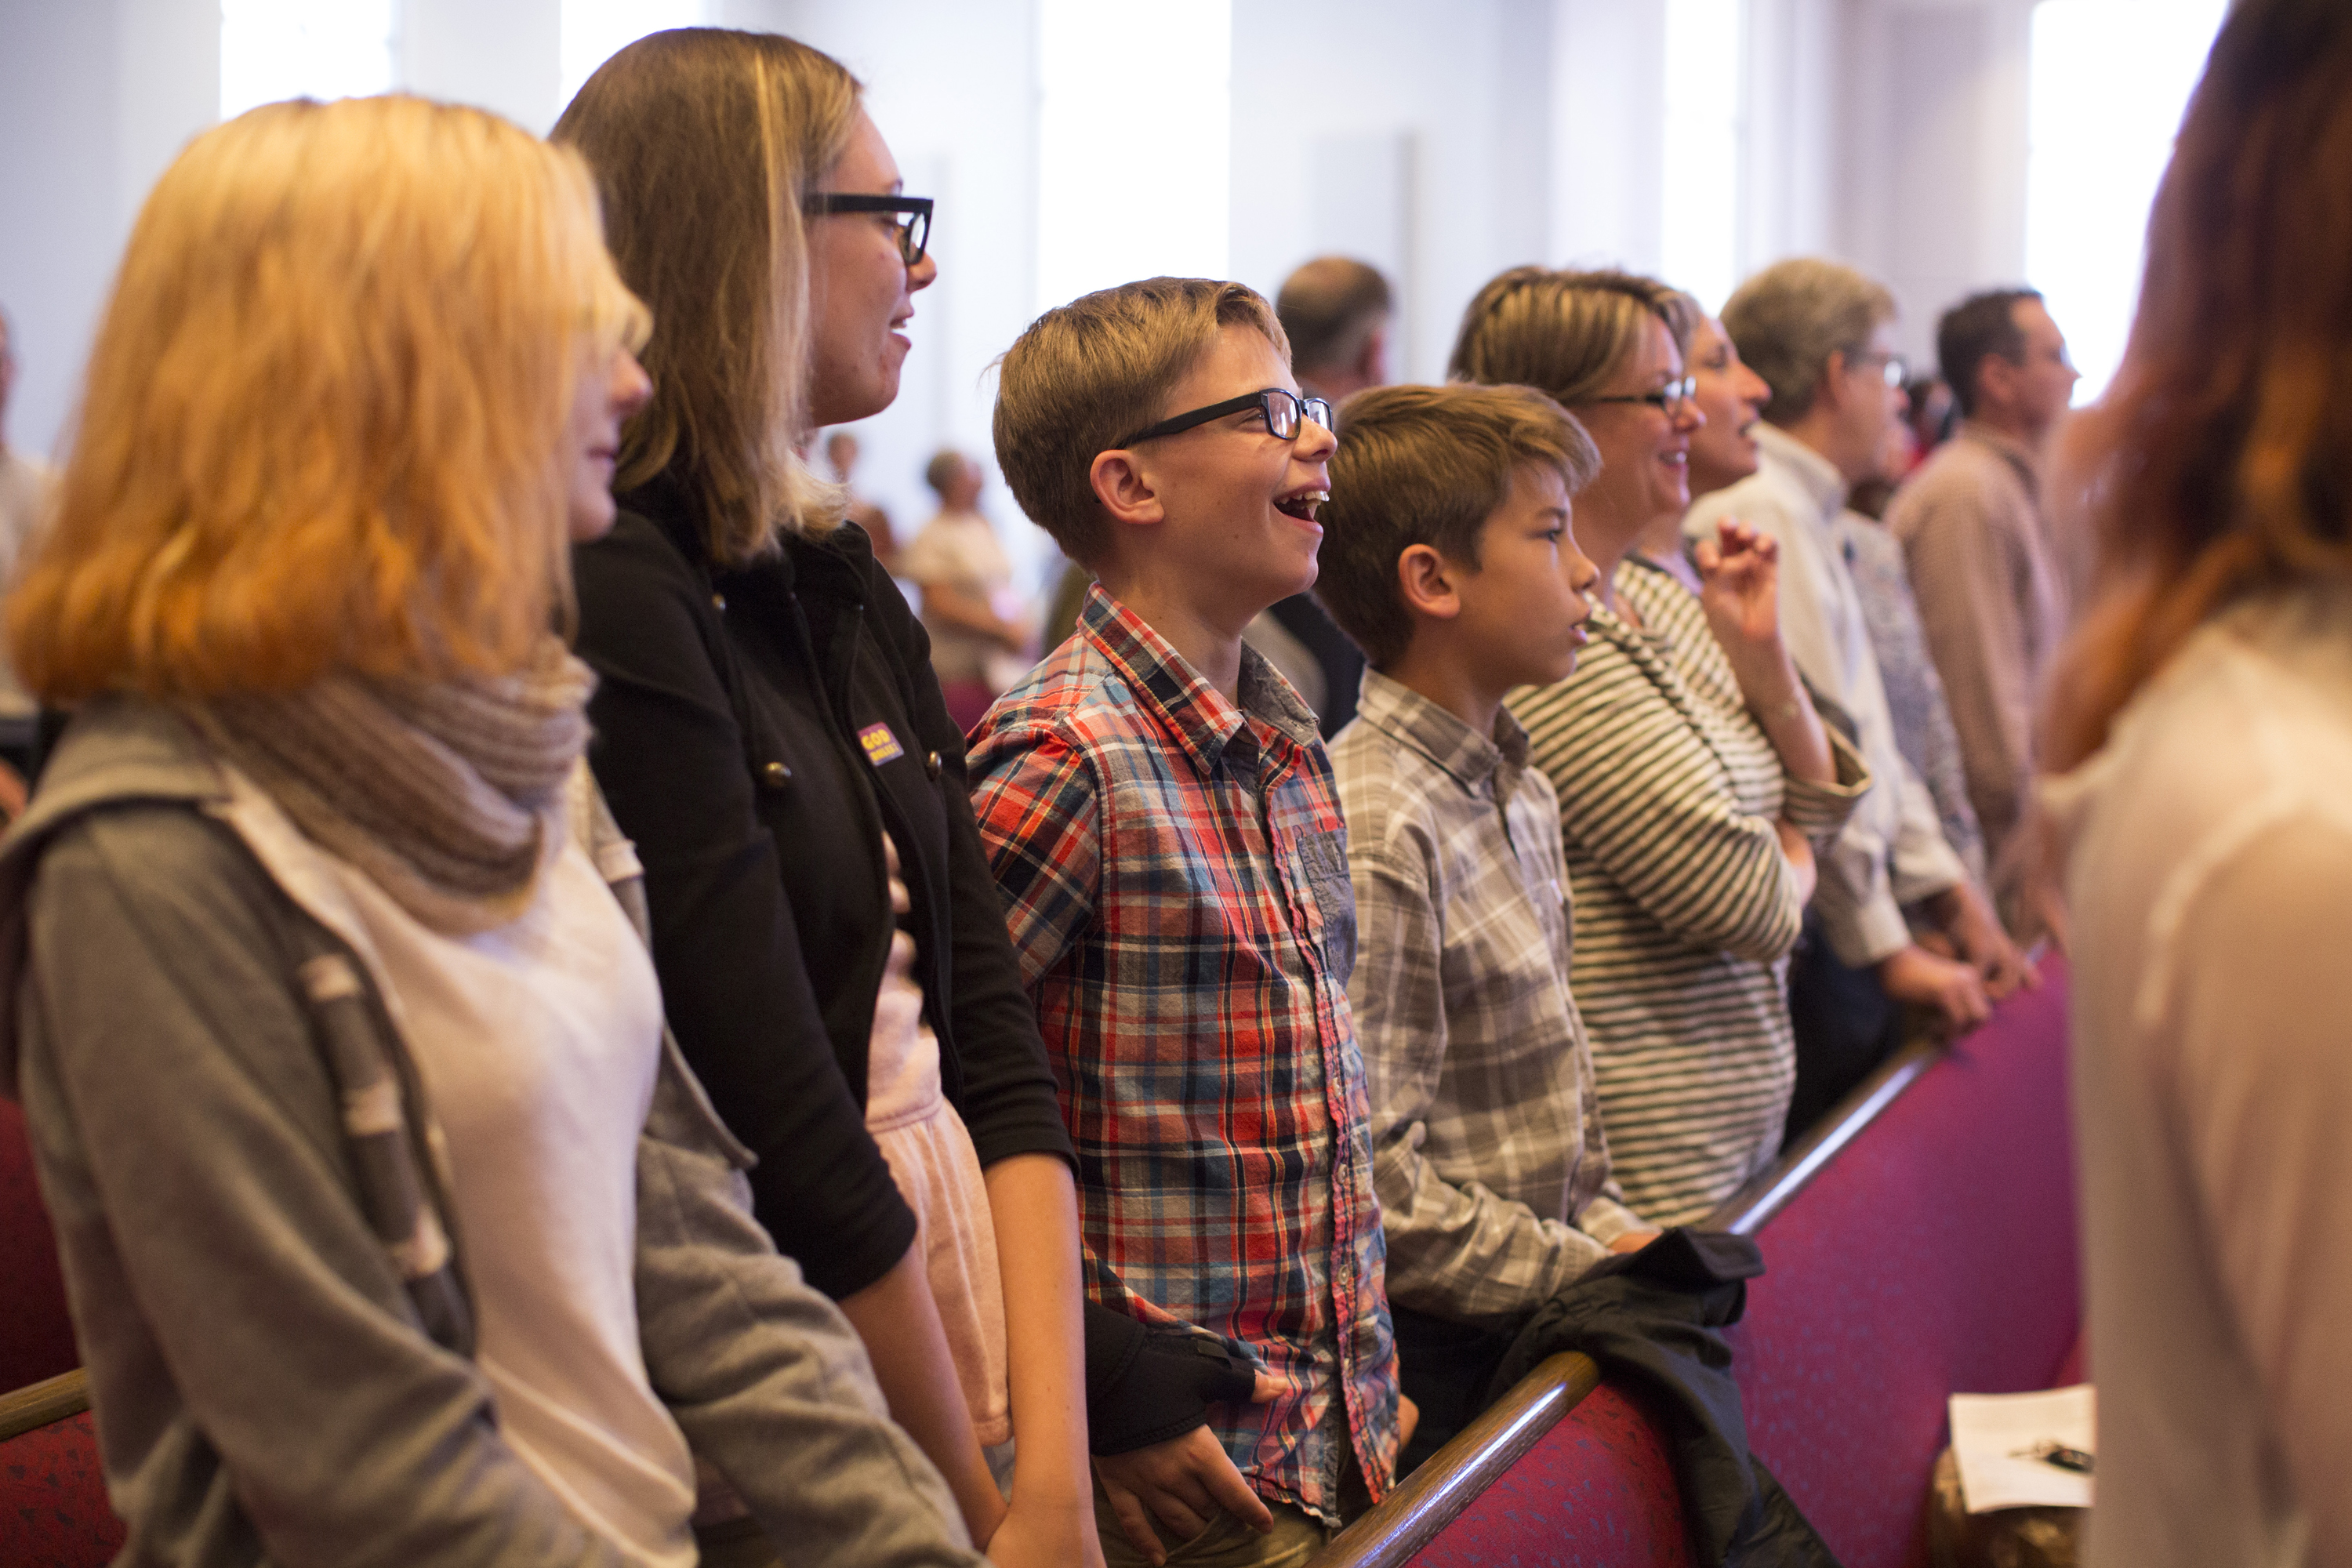 People worship at McKendree United Methodist Church in Lawrenceville, Ga, on Oct. 23, 2016. Photo by Kathleen Barry, UMNS.